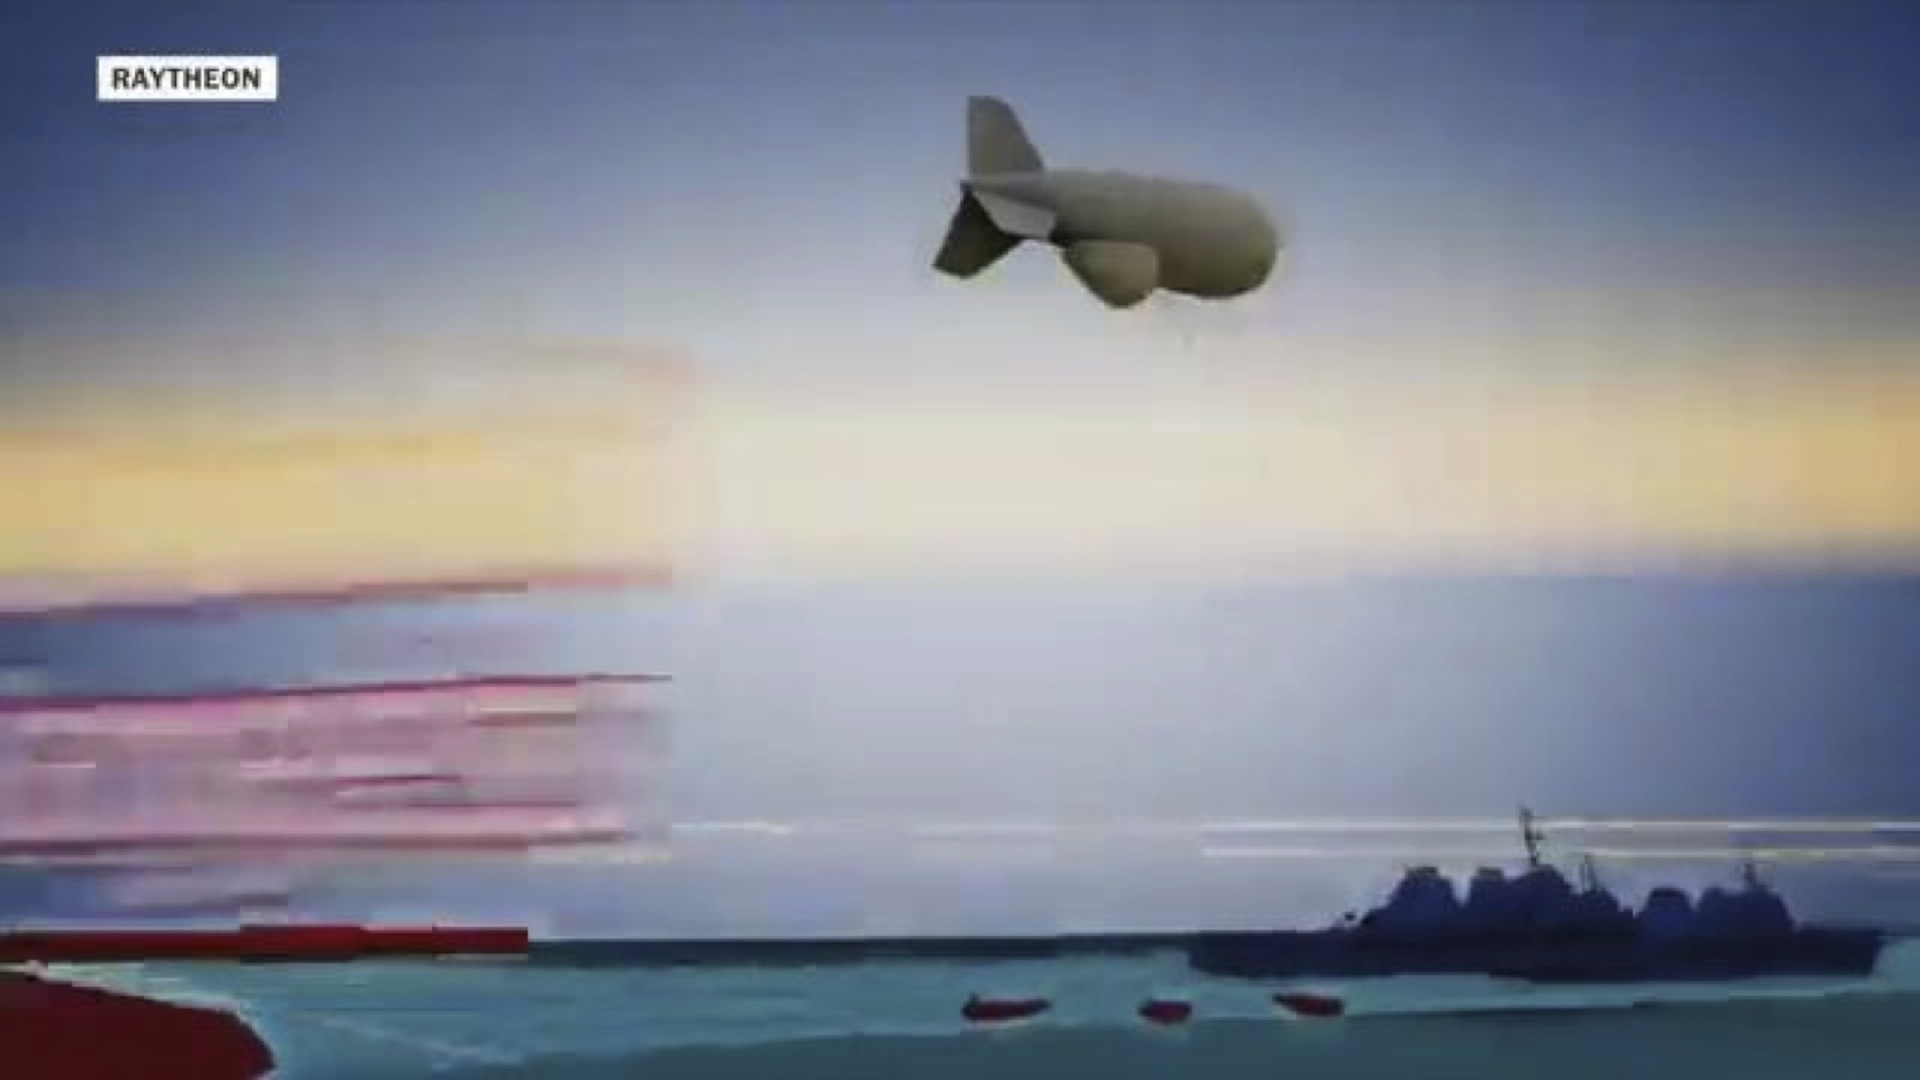 Why Is A Gigantic War-Blimp About To Fly Above the Skies Of Suburban Baltimore? | Zero Hedge